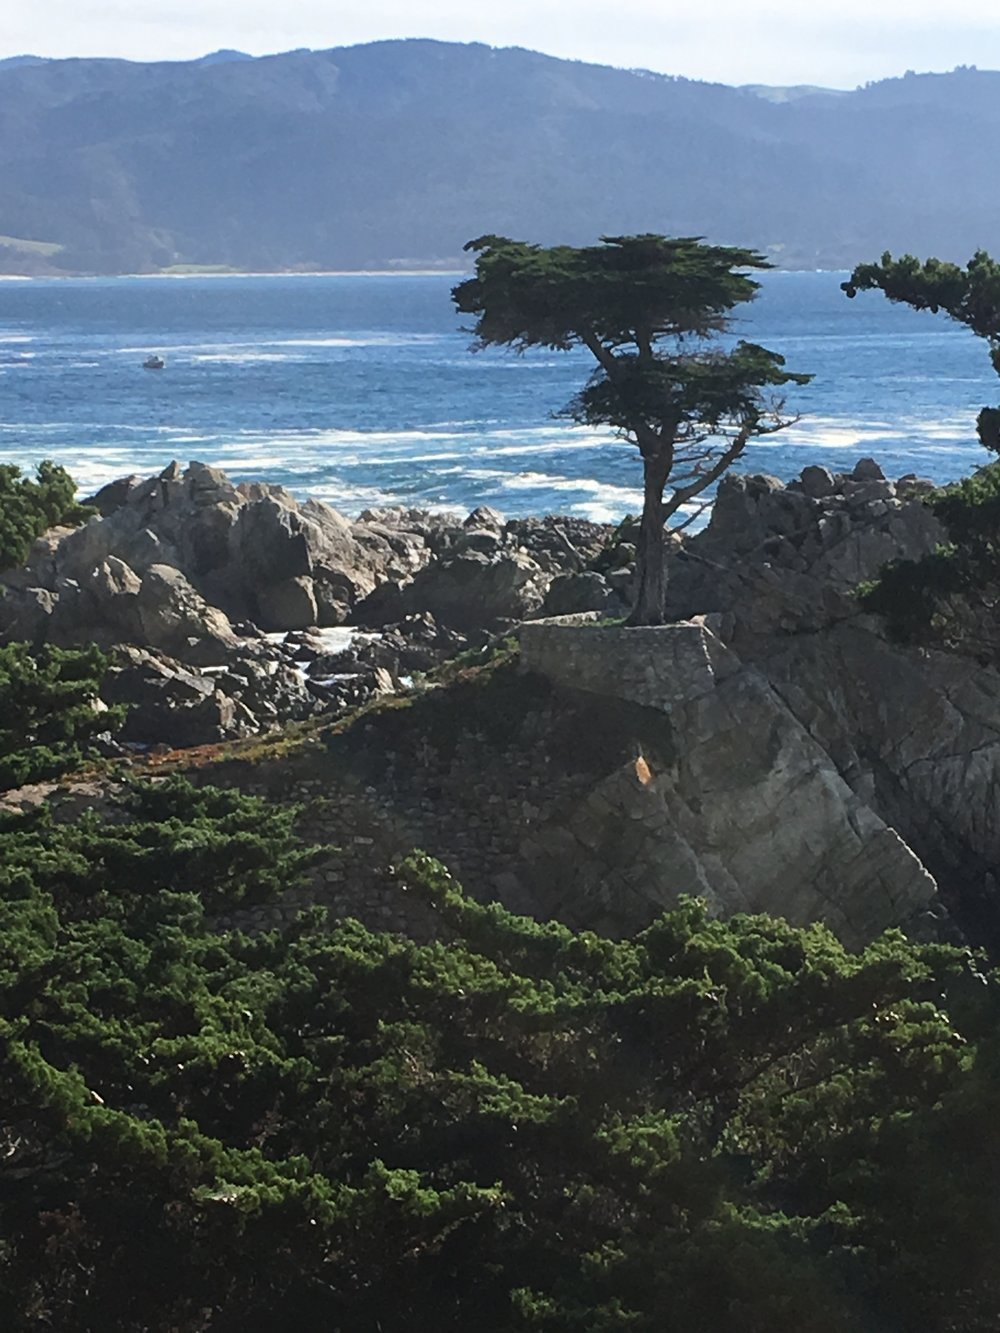 More Cypress trees along the coast.